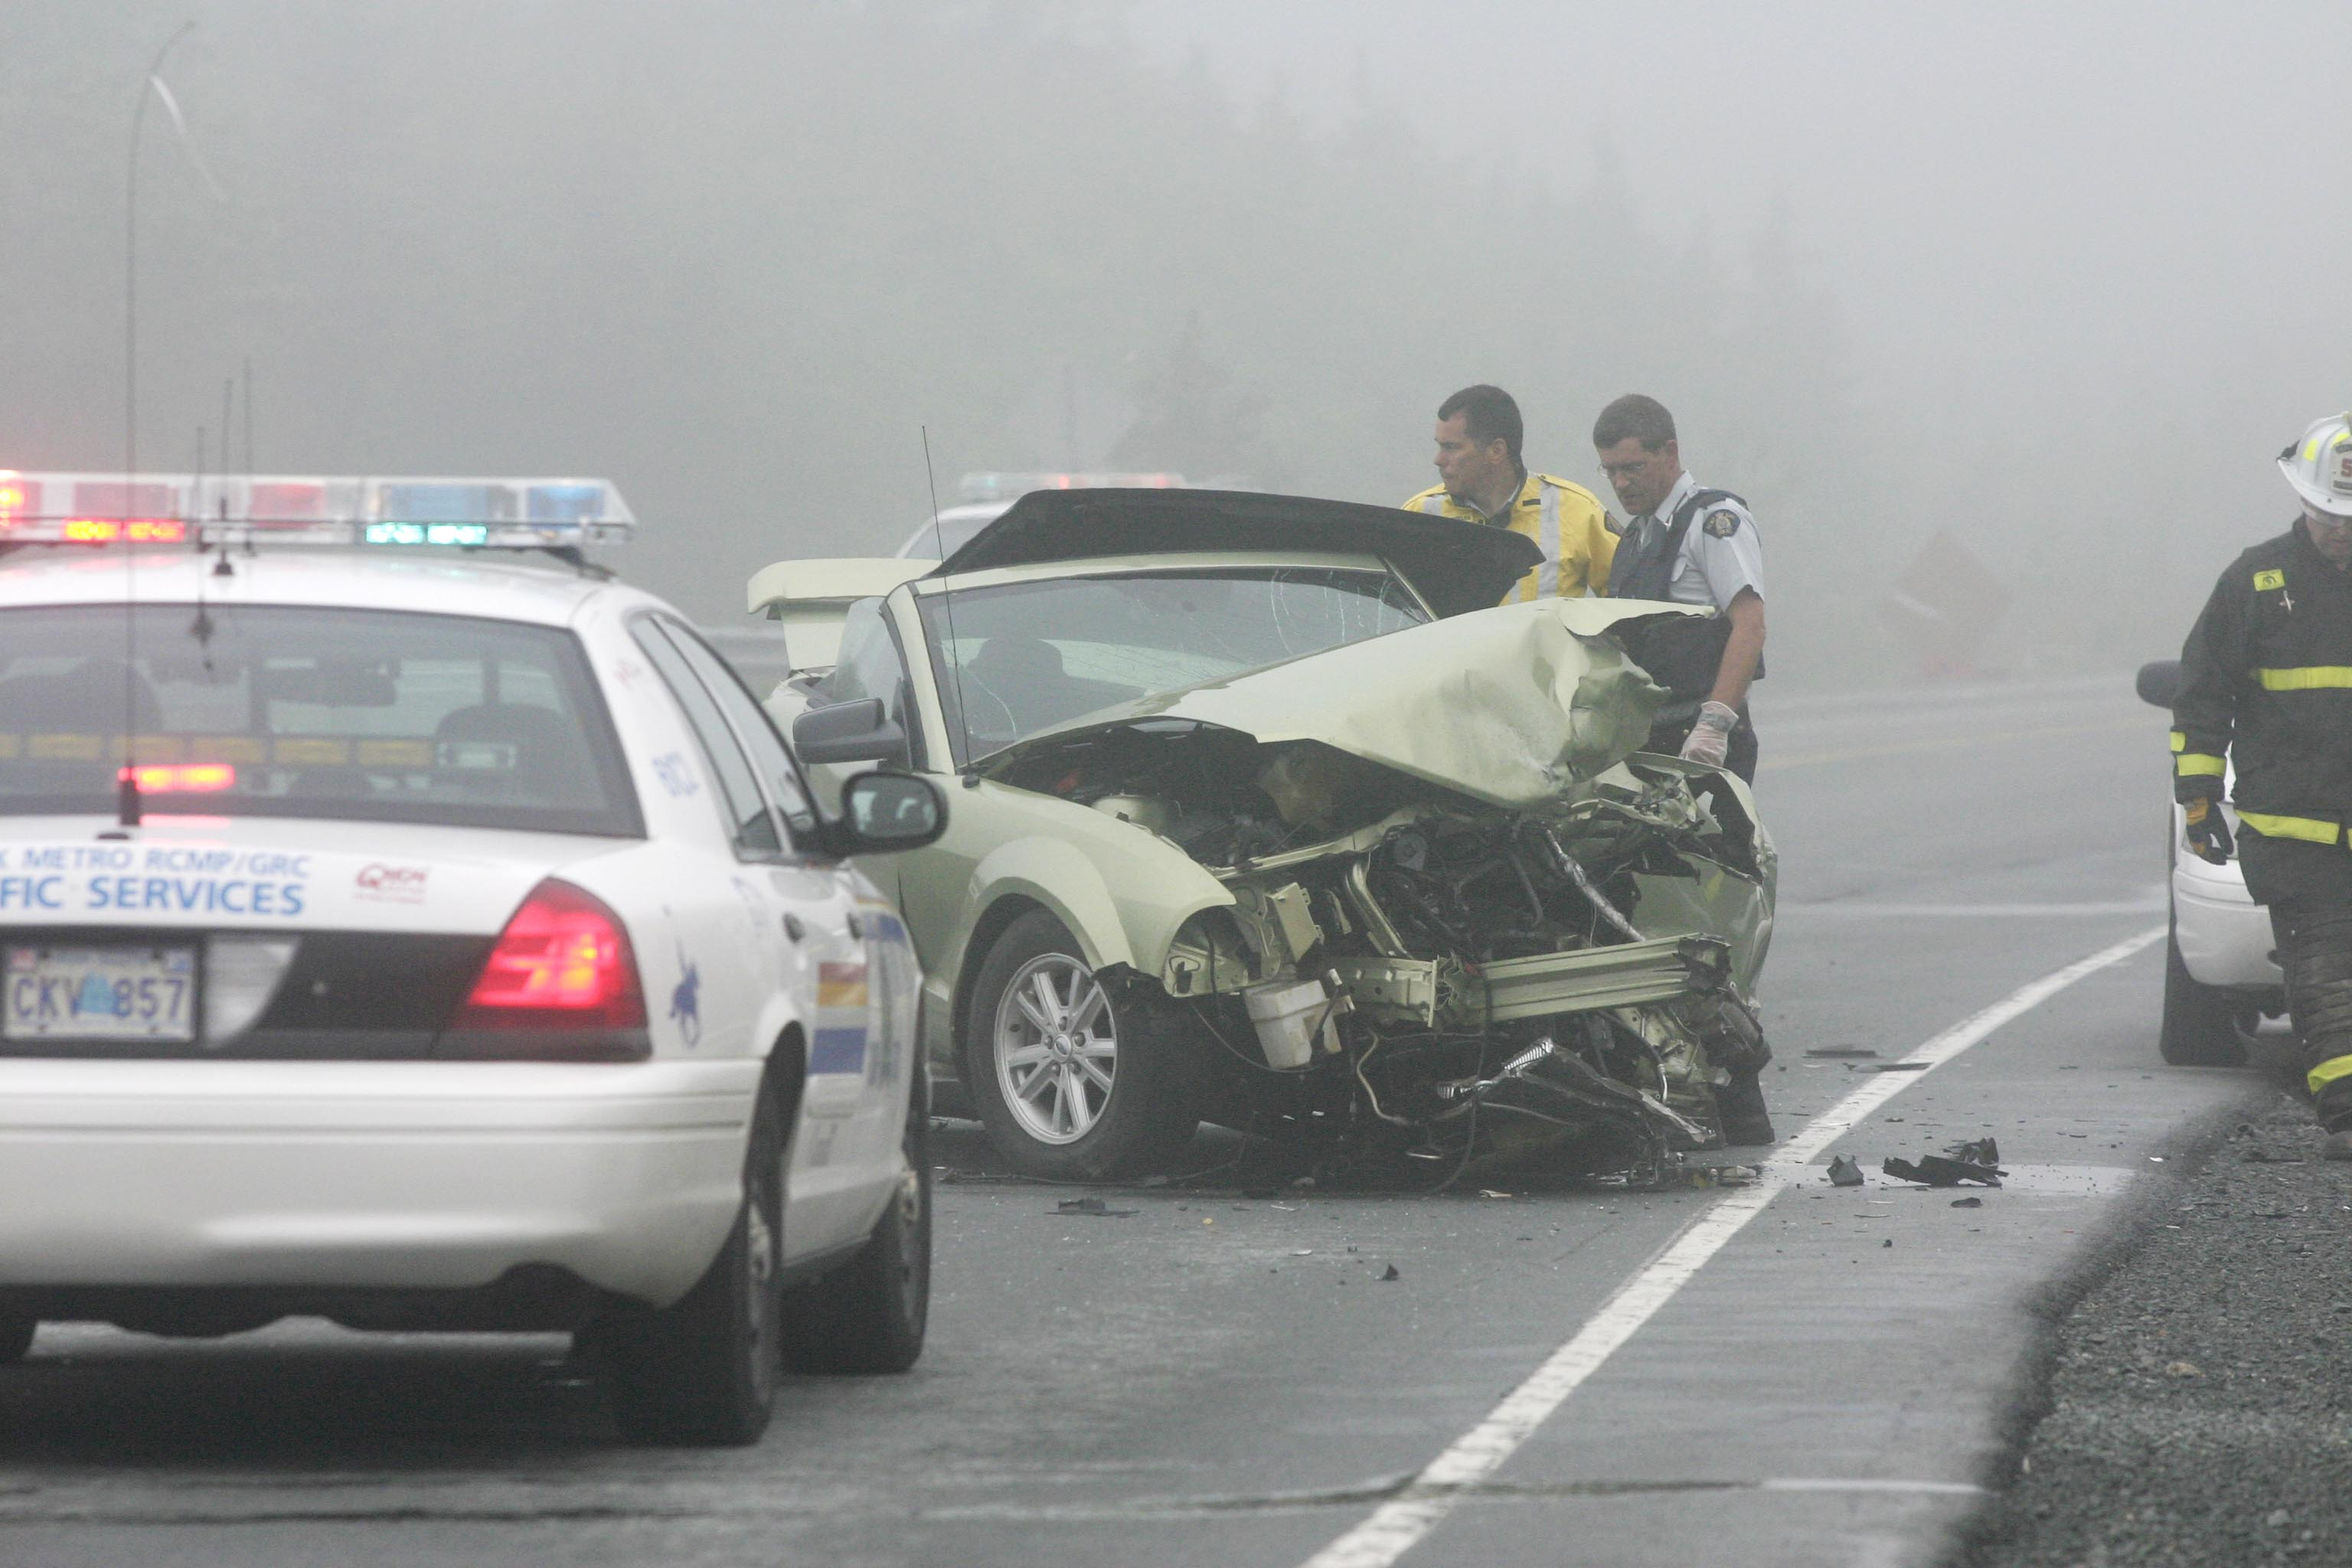 RCMP members responded to a 3 vehicle crash on highway 103 between exits 3 and 4 on Wednesday morning. One person was killed and 2 others were taken to hospital.